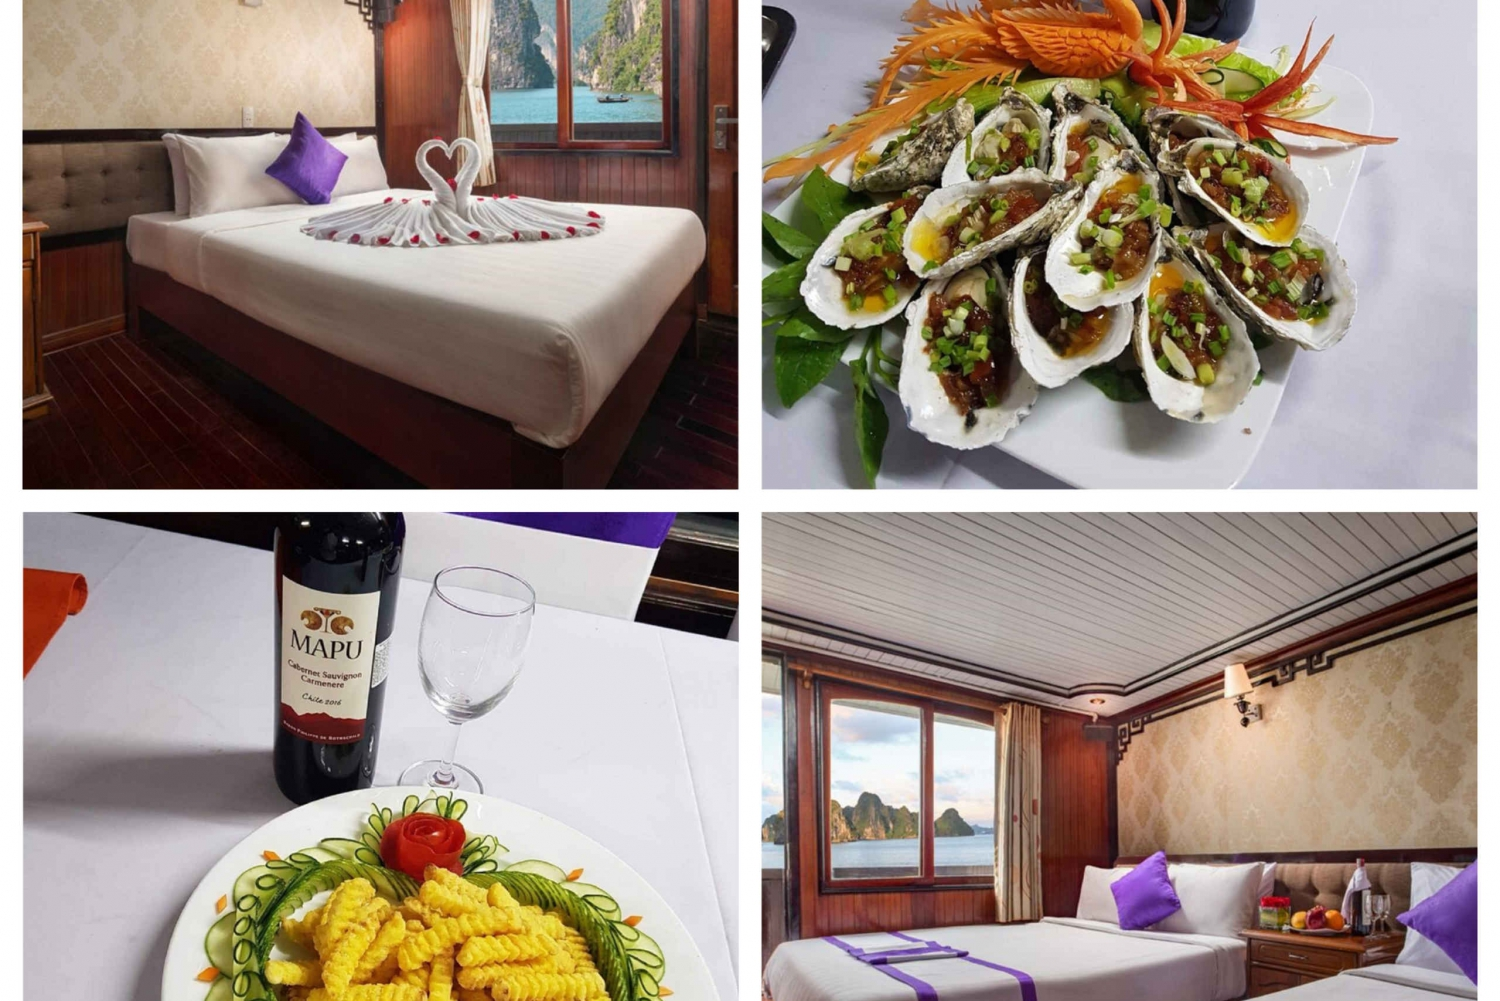 Halong Bay: 2 Days and 1 Night on the Lavender Cruise